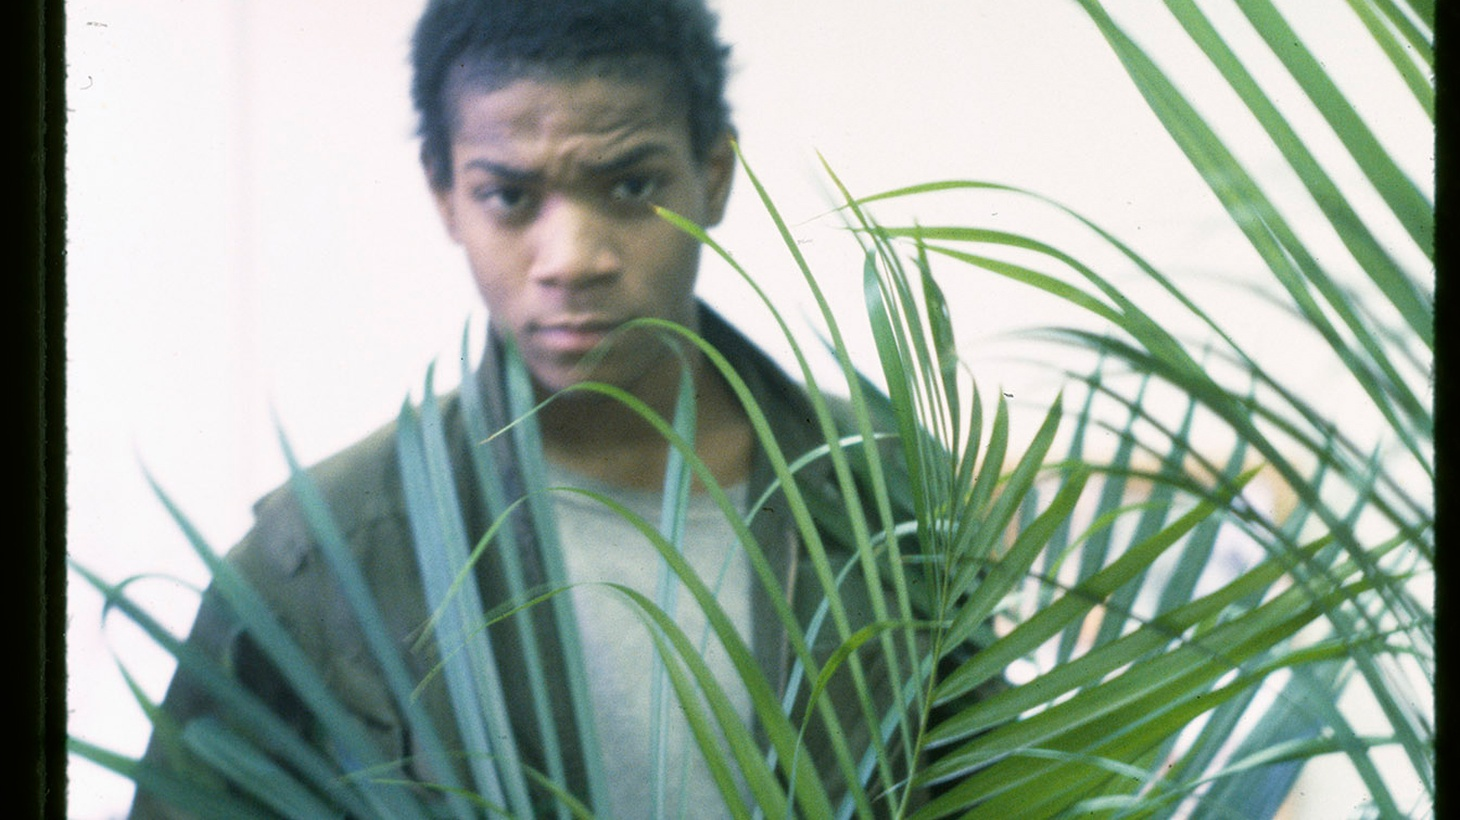 The independent film director discusses her documentary about the early career of the late artist Jean-Michel Basquiat.